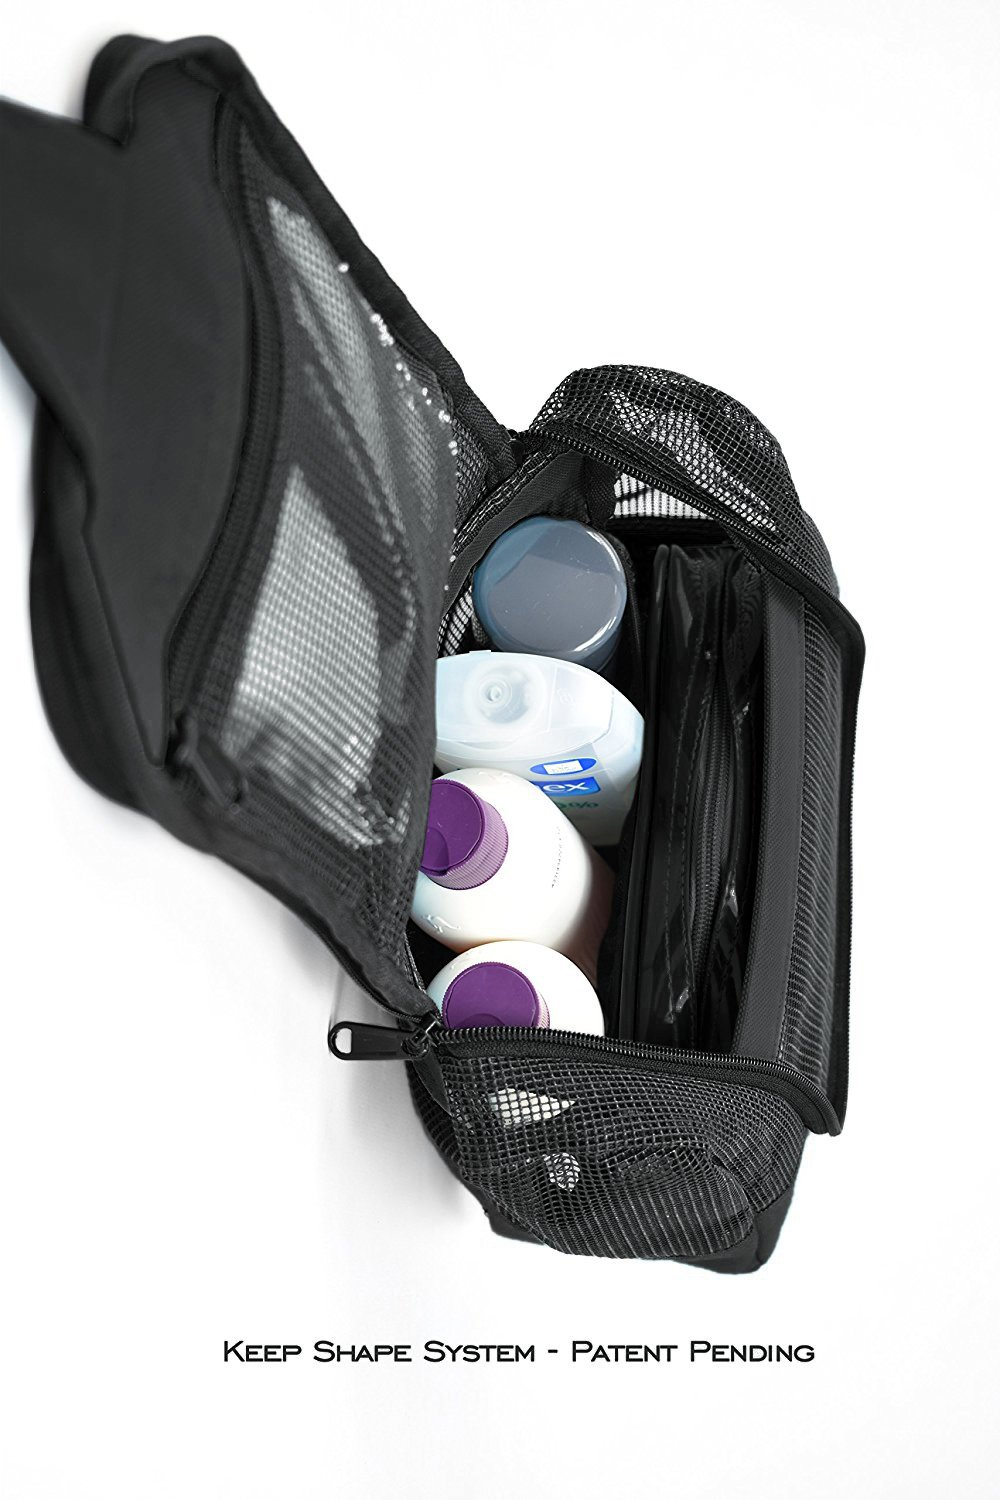 Shower Caddy Case Organizer Tote Nero Black to Hang in The Shower Plus Free Toiletries Bag by The Fine Living Co USA The Fine Living Company CADDY3CSEBLK